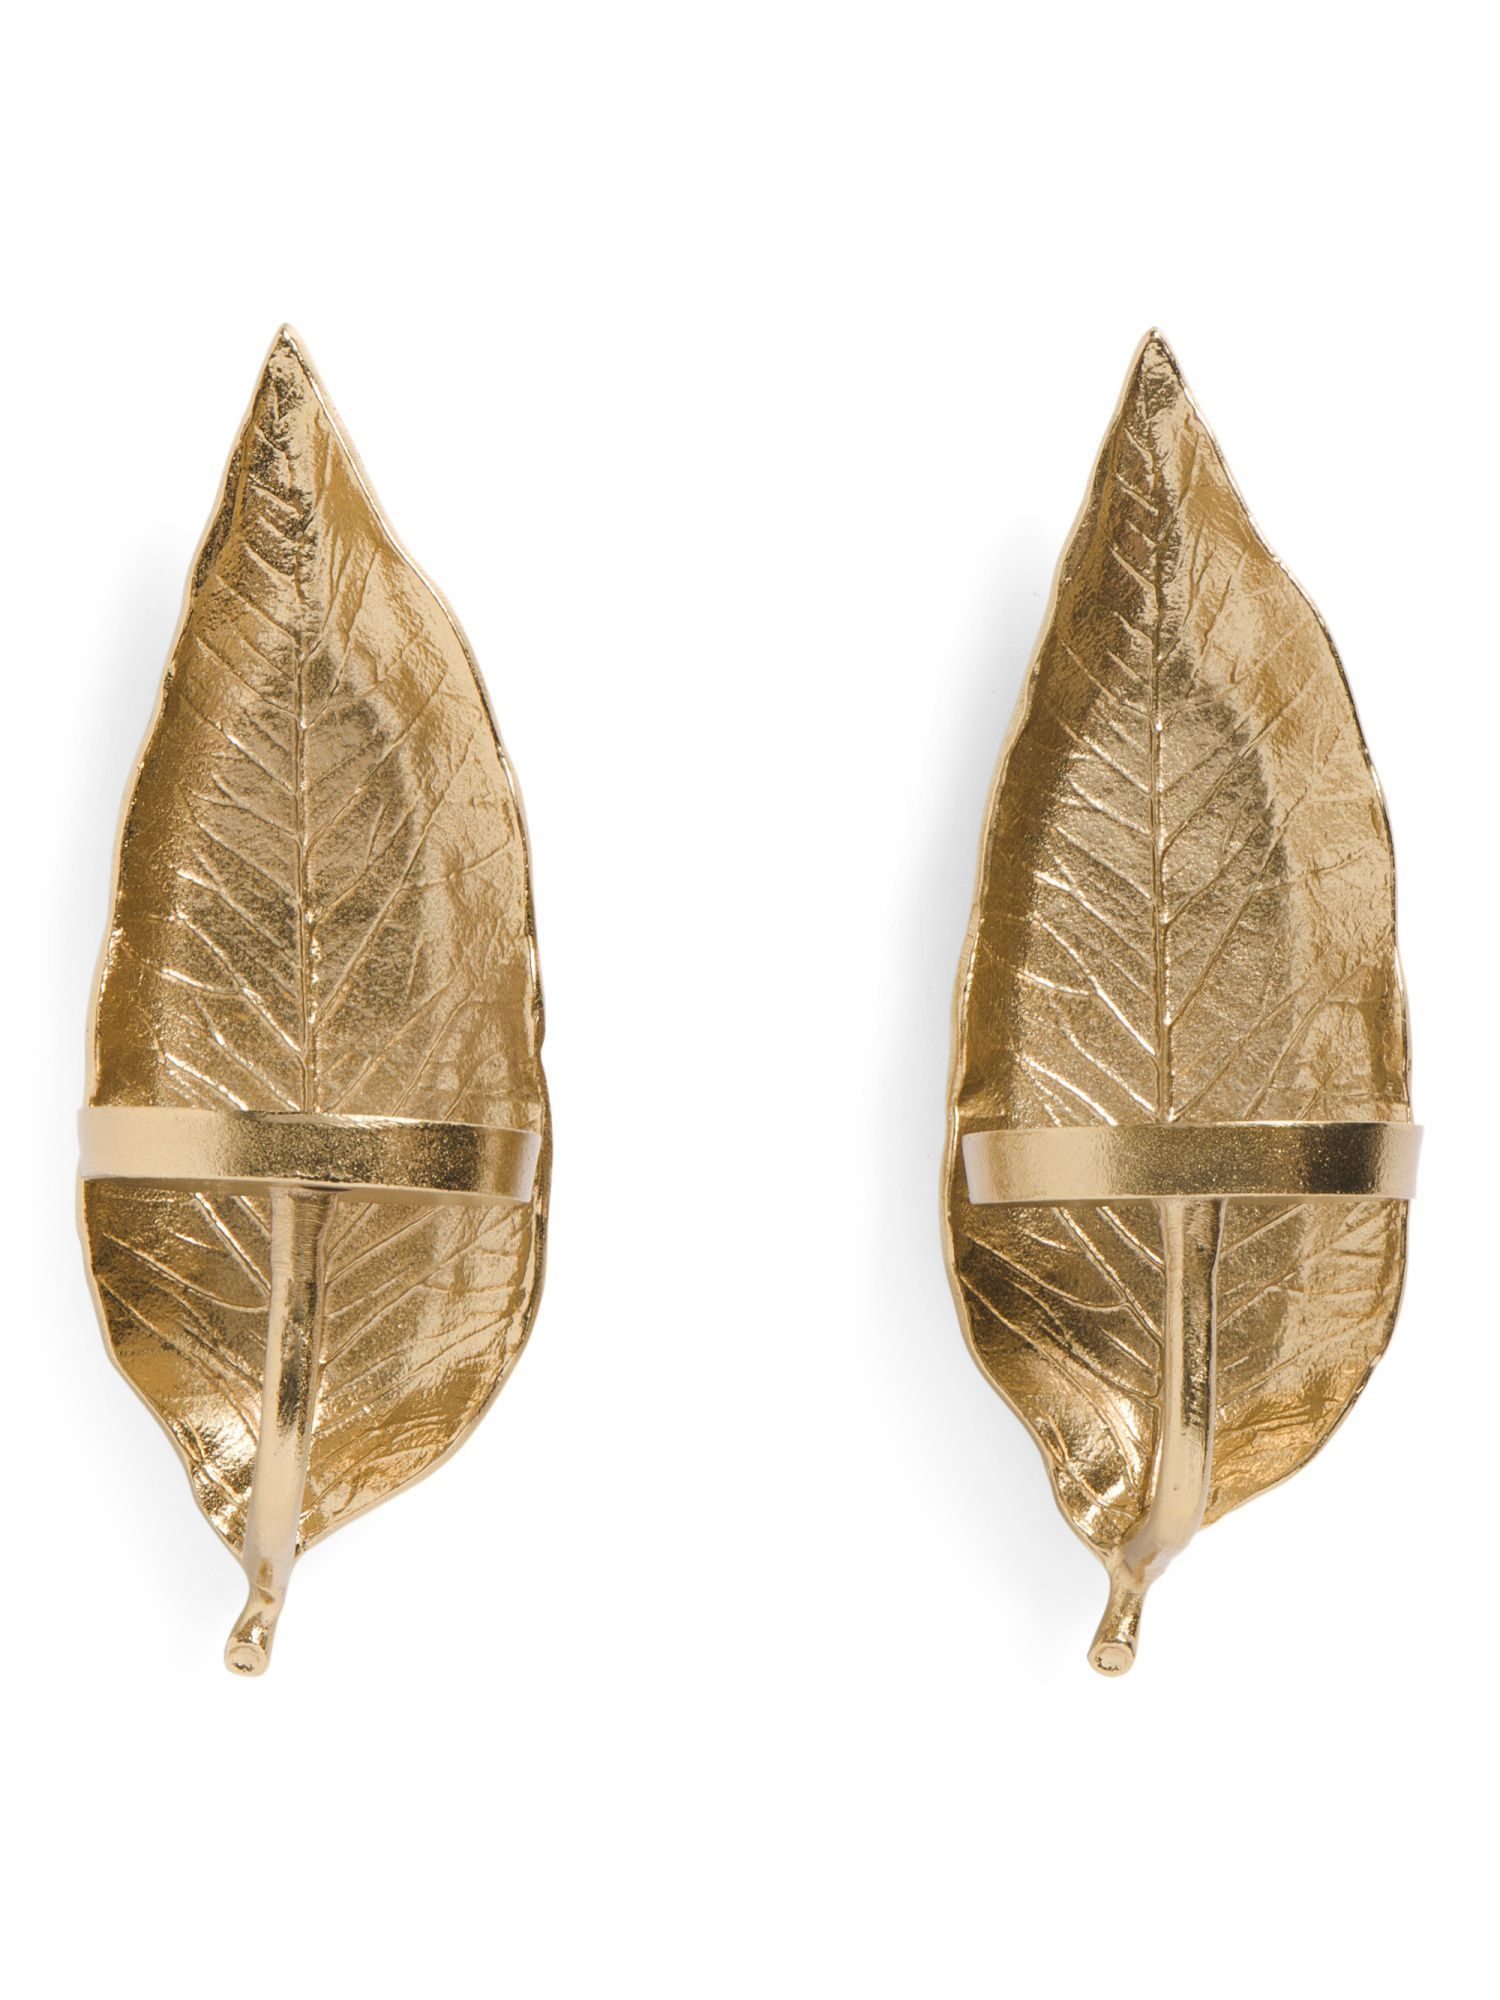 Made in india set of 2 leaf wall sconces products pinterest made in india set of 2 leaf wall sconces amipublicfo Choice Image